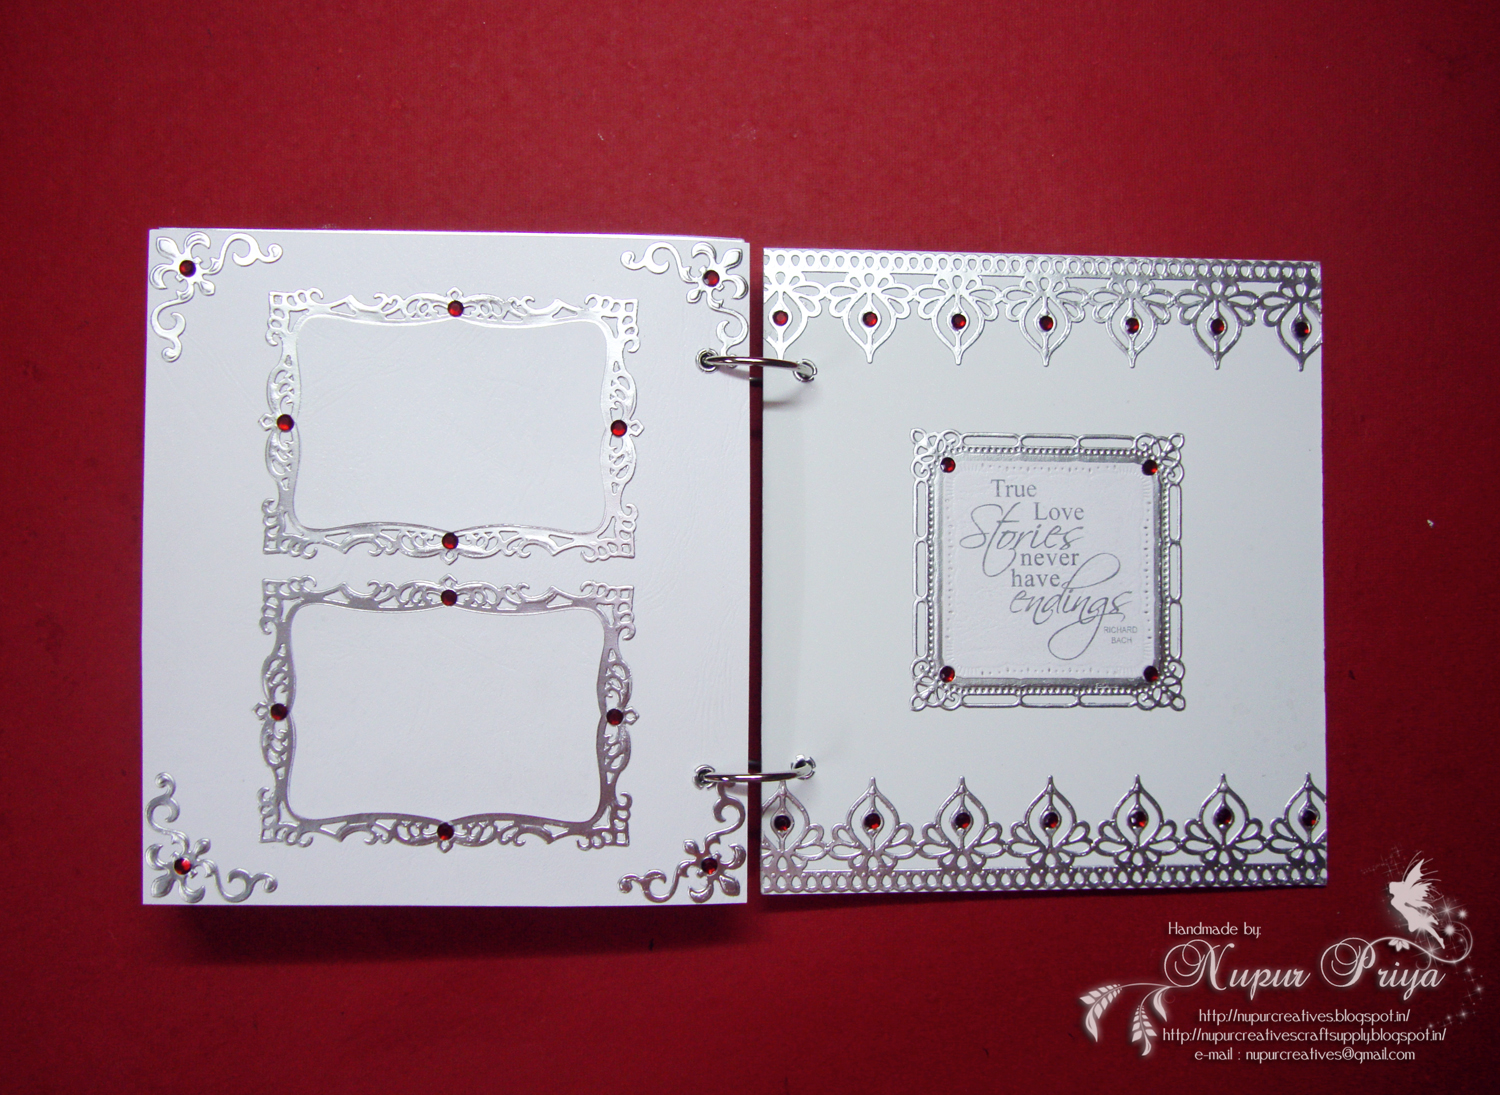 For 3 Photographs On The Last 2 Pages So That They Can Attach Of Their 25th Wedding Anniversary Celebration Complete Scrapbook